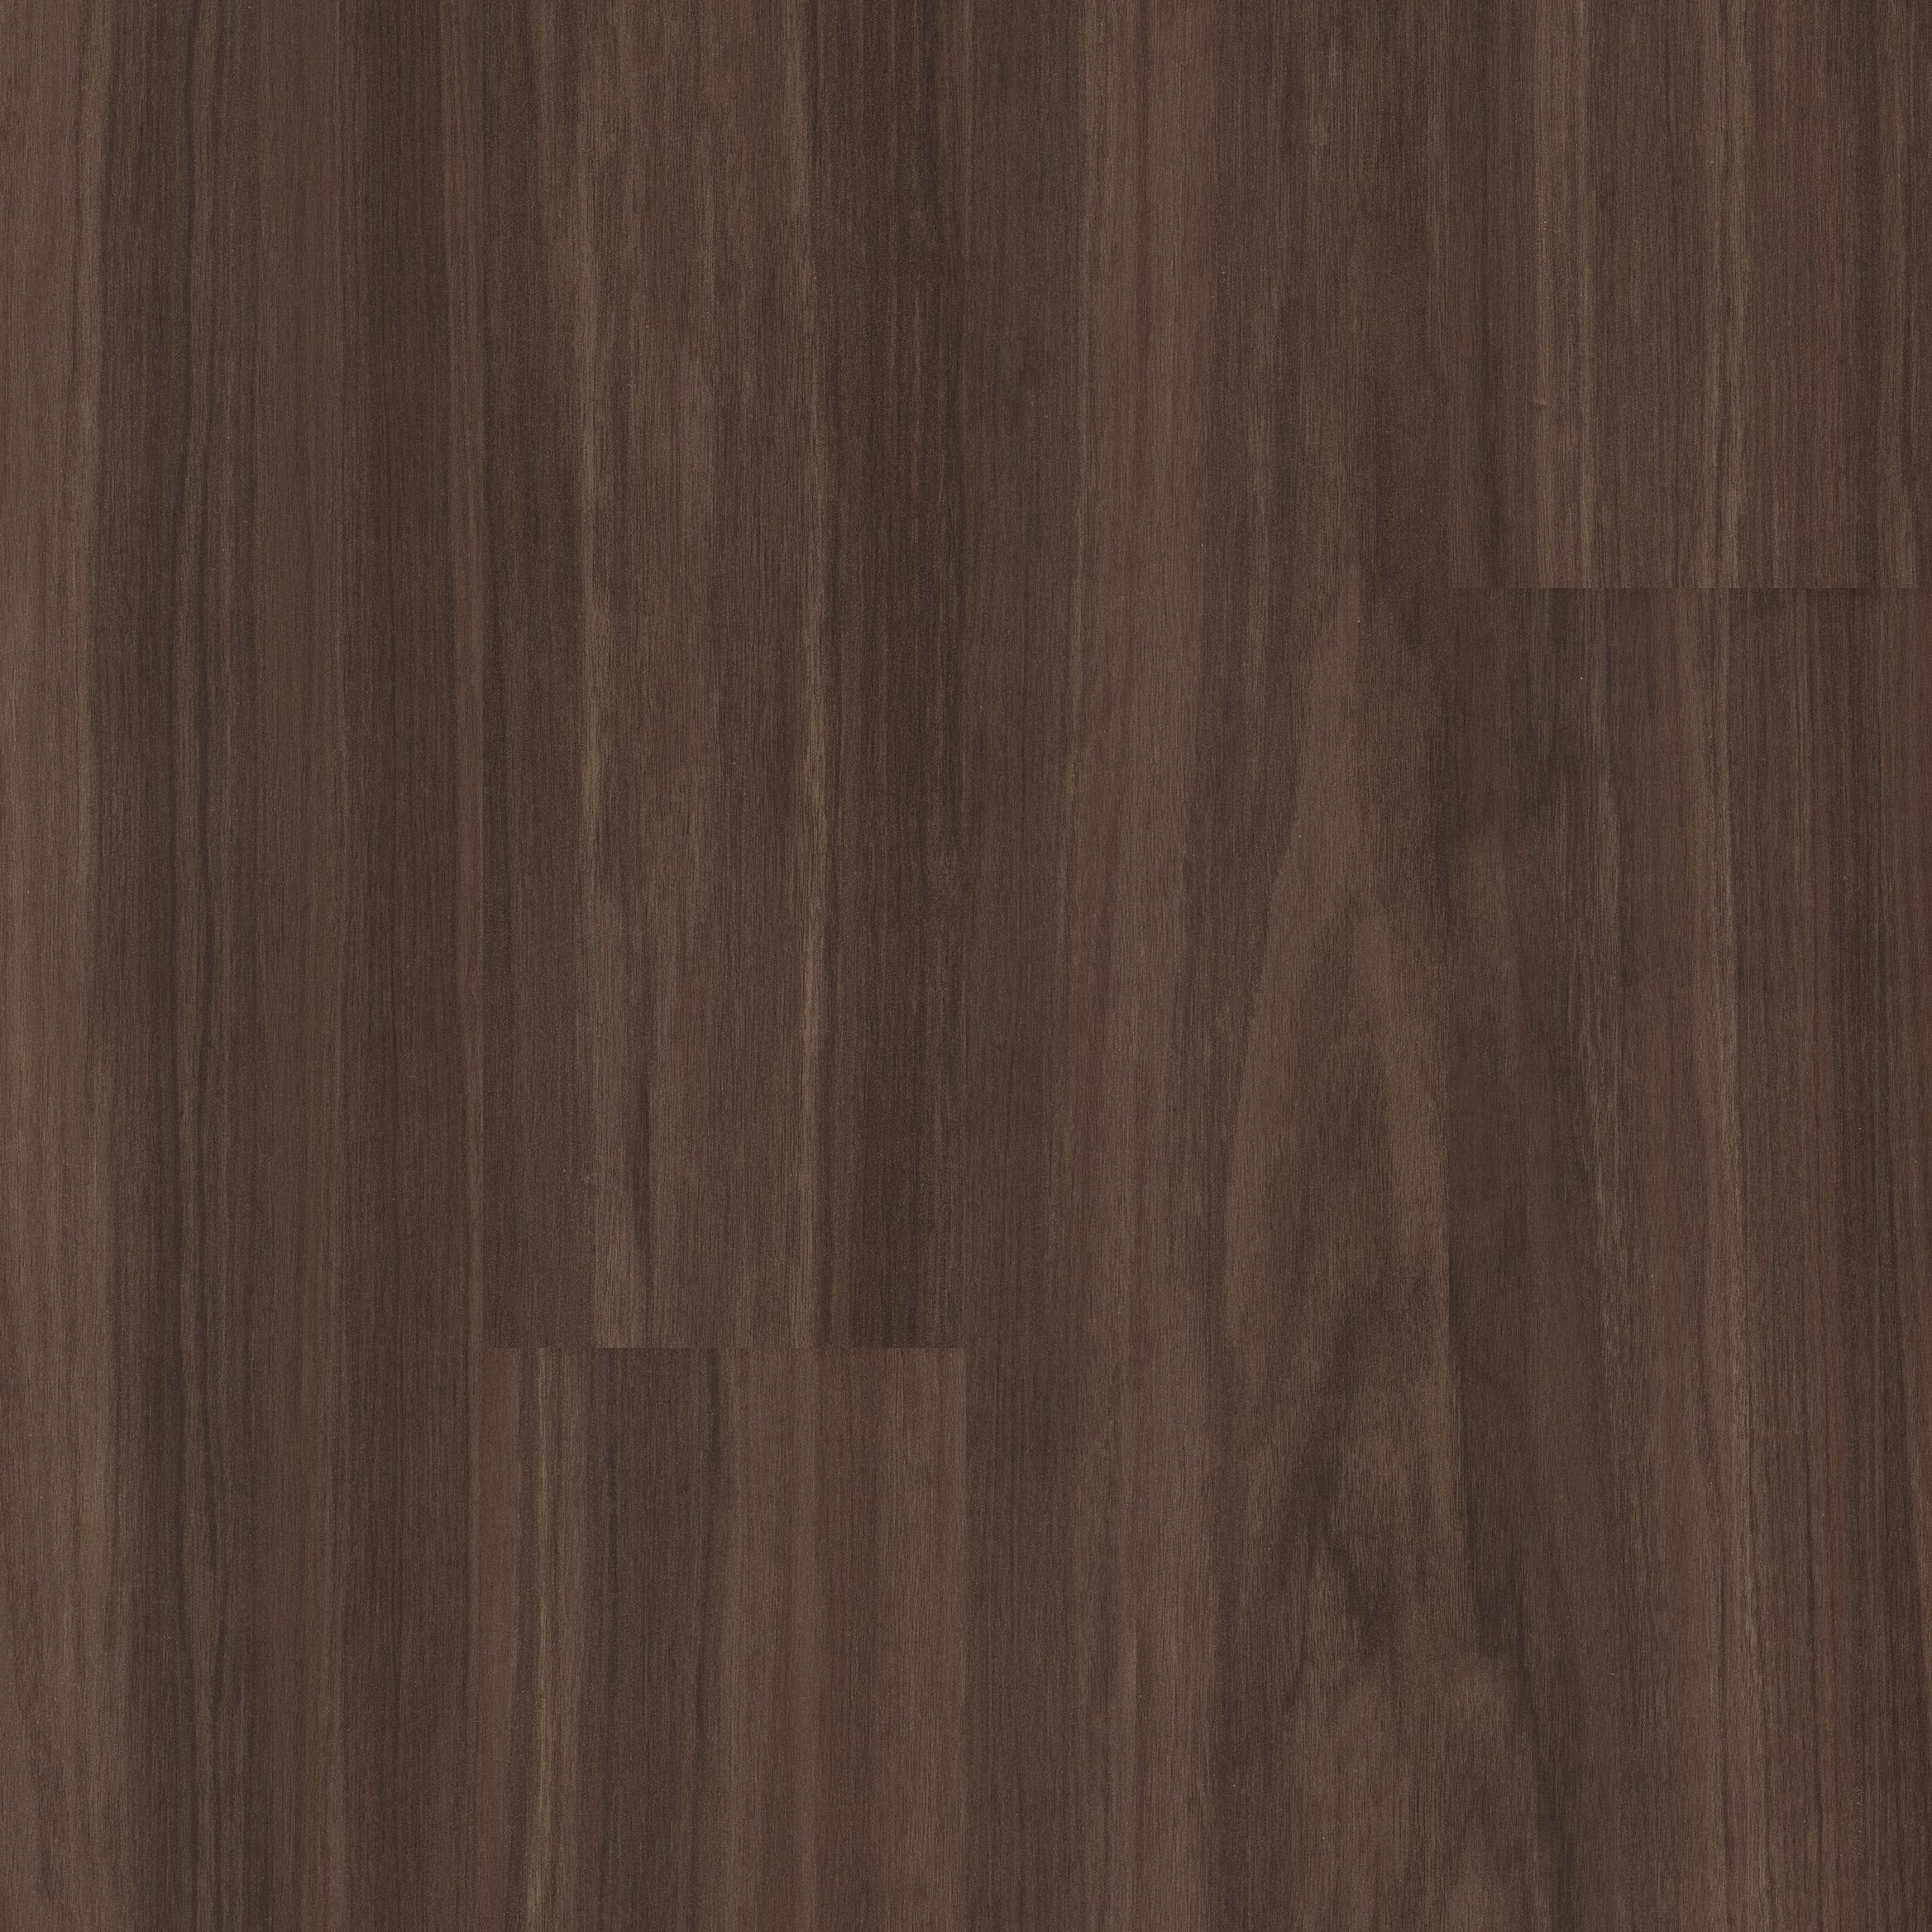 Is Hardwood Flooring Waterproof Of Ivc Moduleo Horizon Castello Cherry 6 Waterproof Luxury Vinyl Plank Throughout Ivc Moduleo Horizon Castello Cherry 6 Waterproof Luxury Vinyl Plank 60272